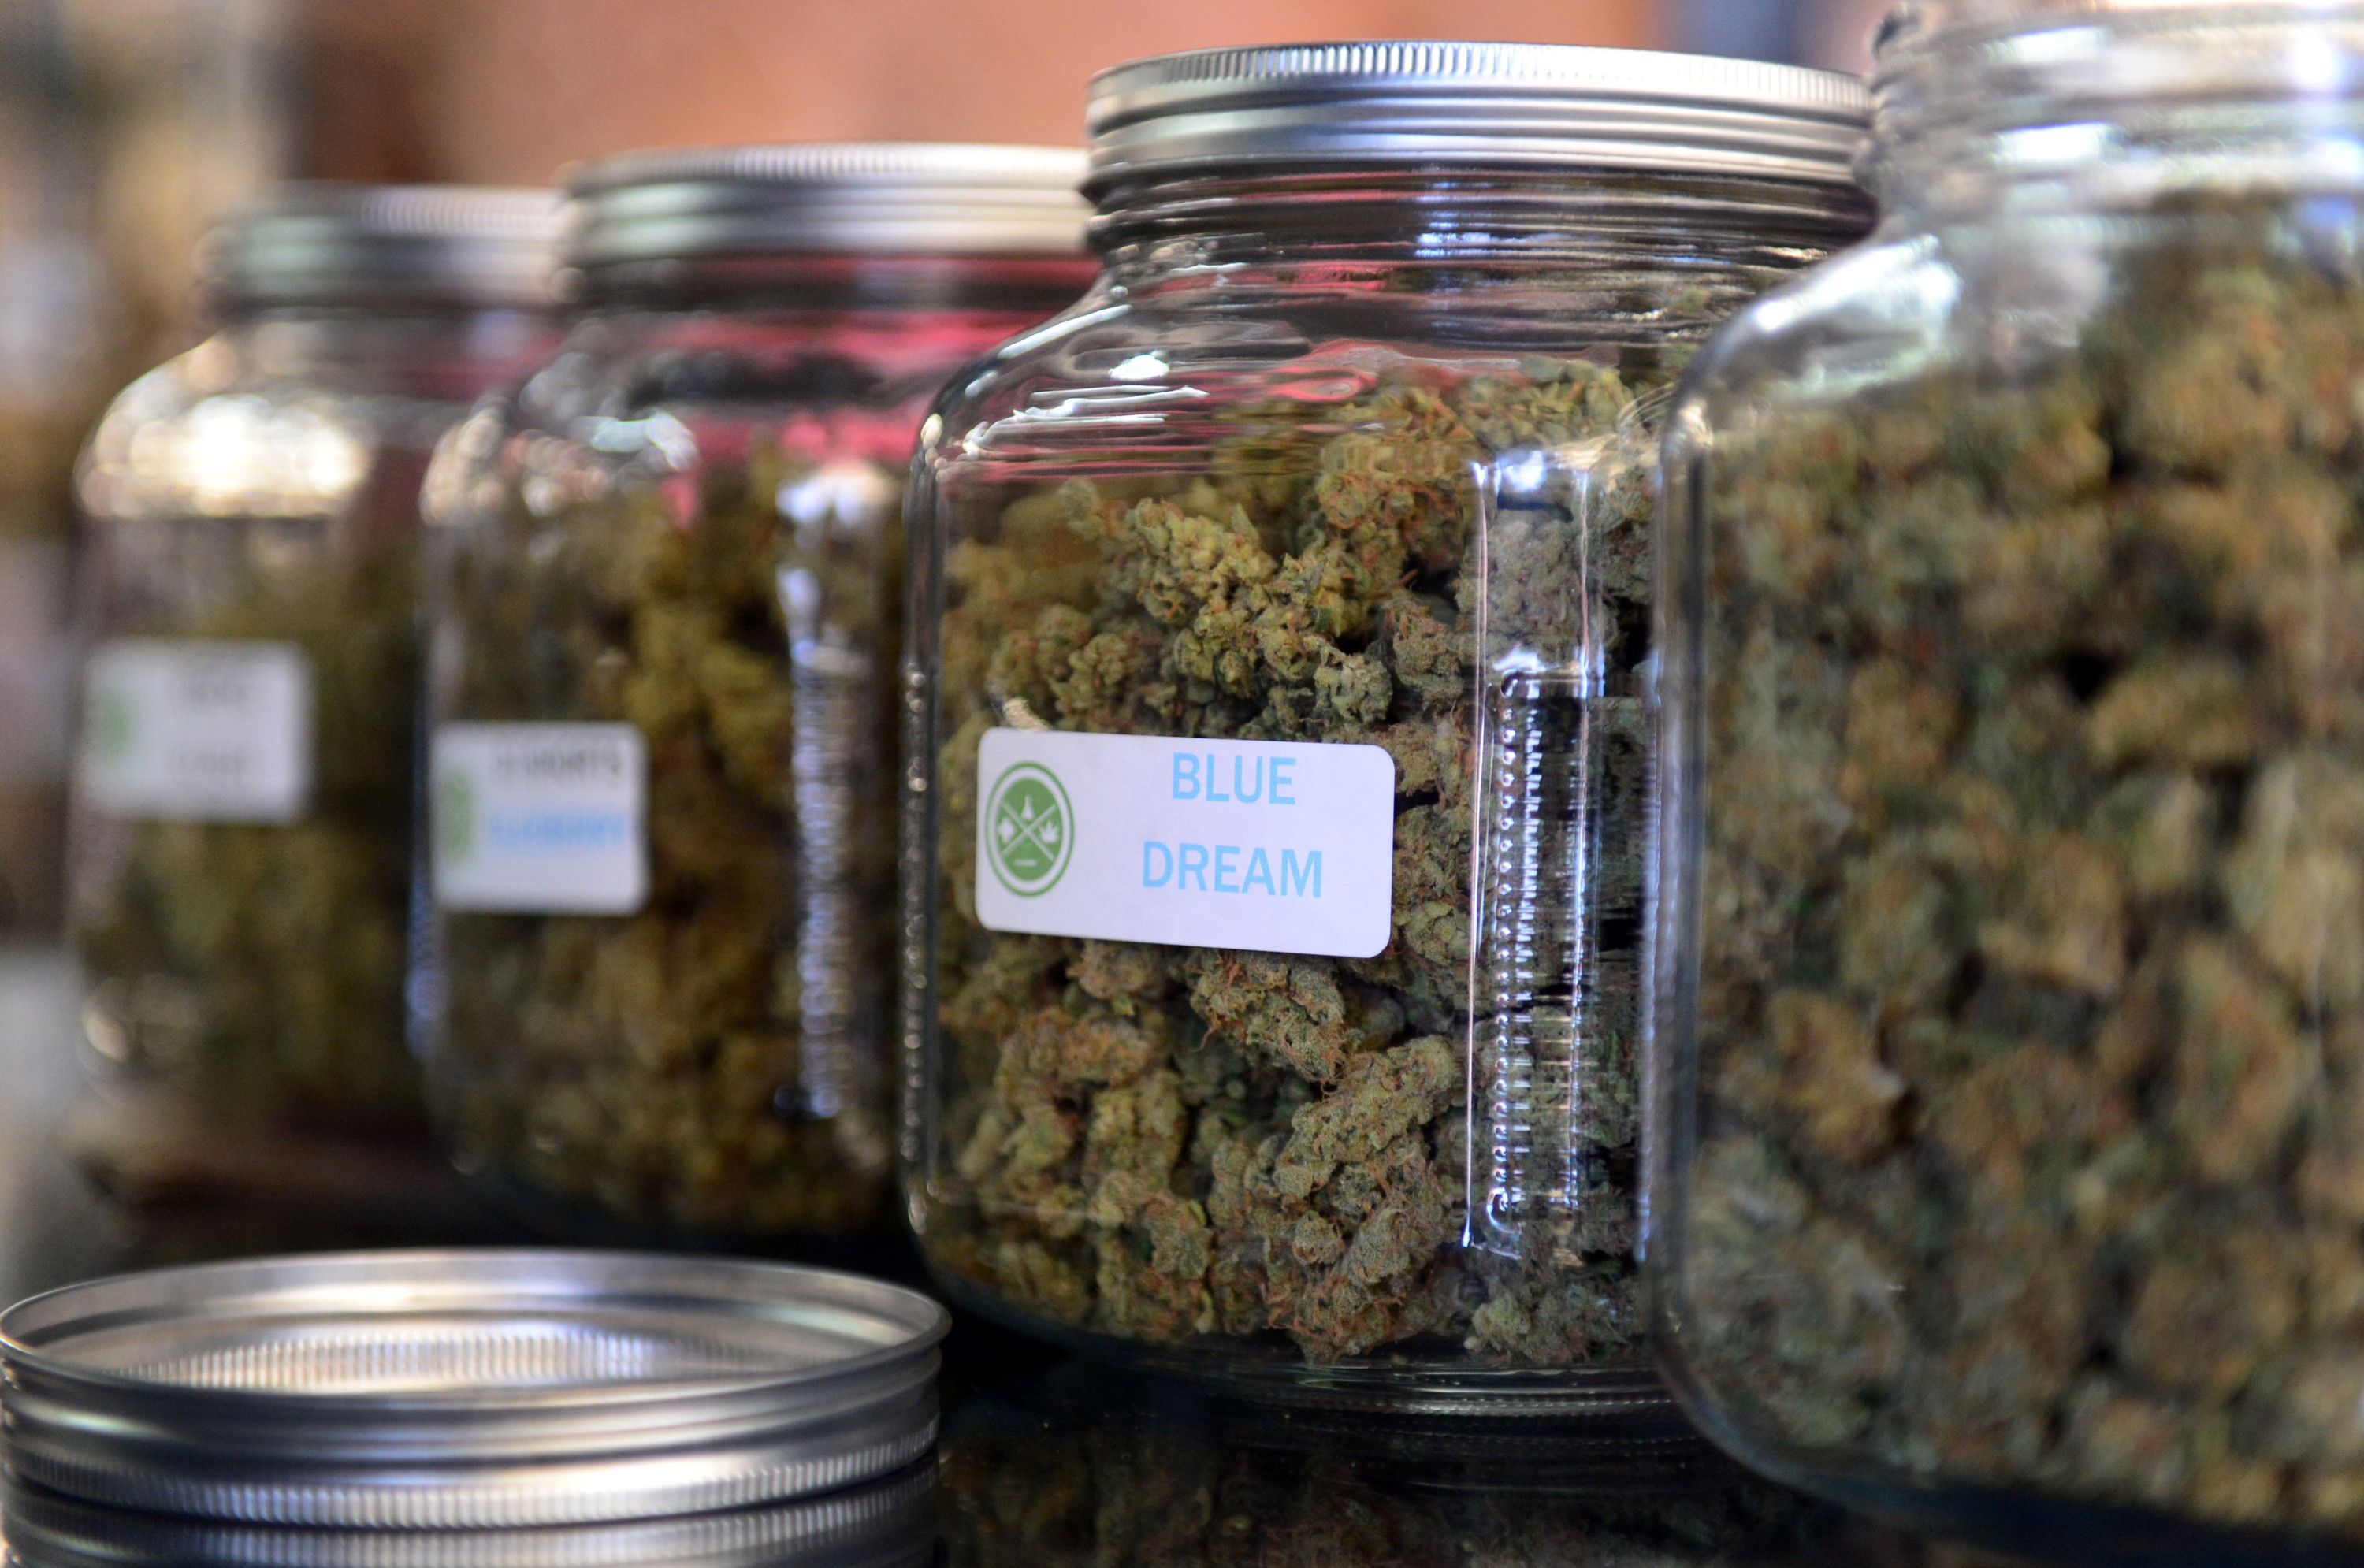 The highly-rated strain of medical marijuana 'Blue Dream' is displayed among others in glass jars at Los Angeles' first-ever cannabis farmer's market at the West Coast Collective medical marijuana dispensary, on the fourth of July, or Independence Day, in Los Angeles, California on July 4, 2014 where organizer's of the 3-day event plan to showcase high quality cannabis from growers and vendors throughout the state. A vendor is seen here responding to questions and offering a whiff of the strain 'Skyjack'.  AFP PHOTO/Frederic J. BROWN